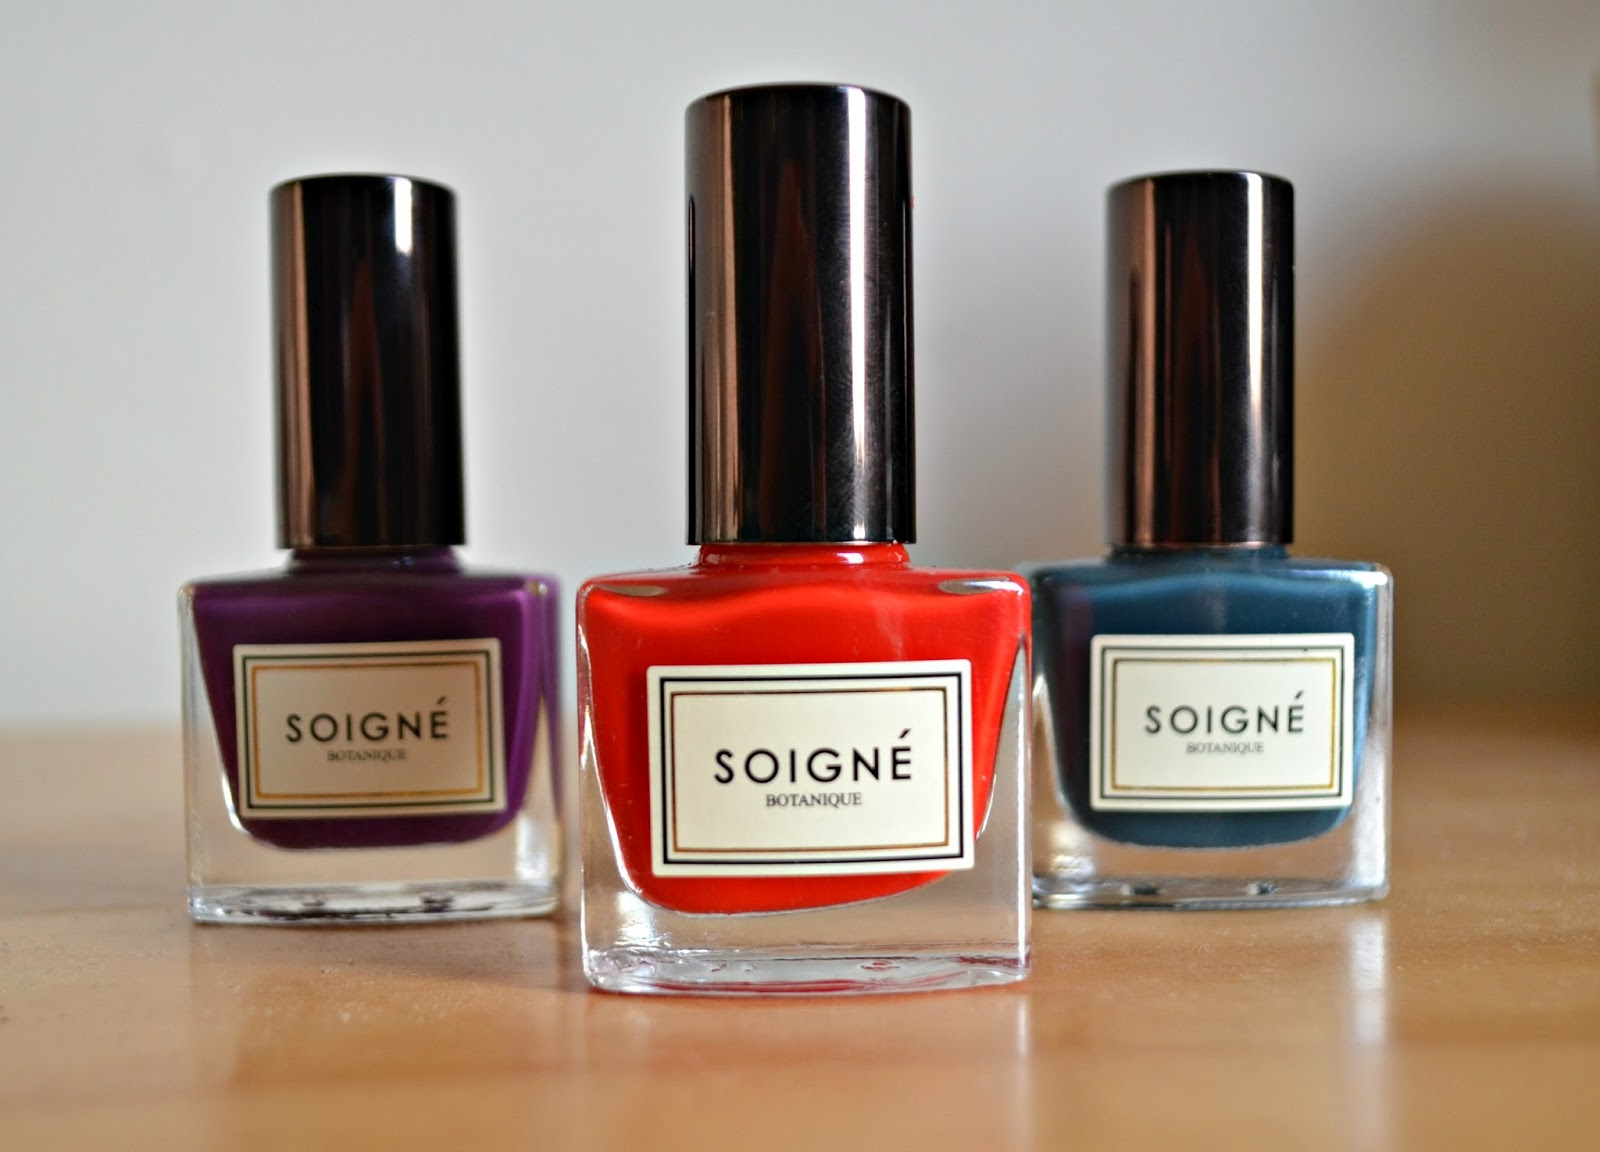 Soigne Botanique Plant-Based, Eco-Friendly Nail Polish